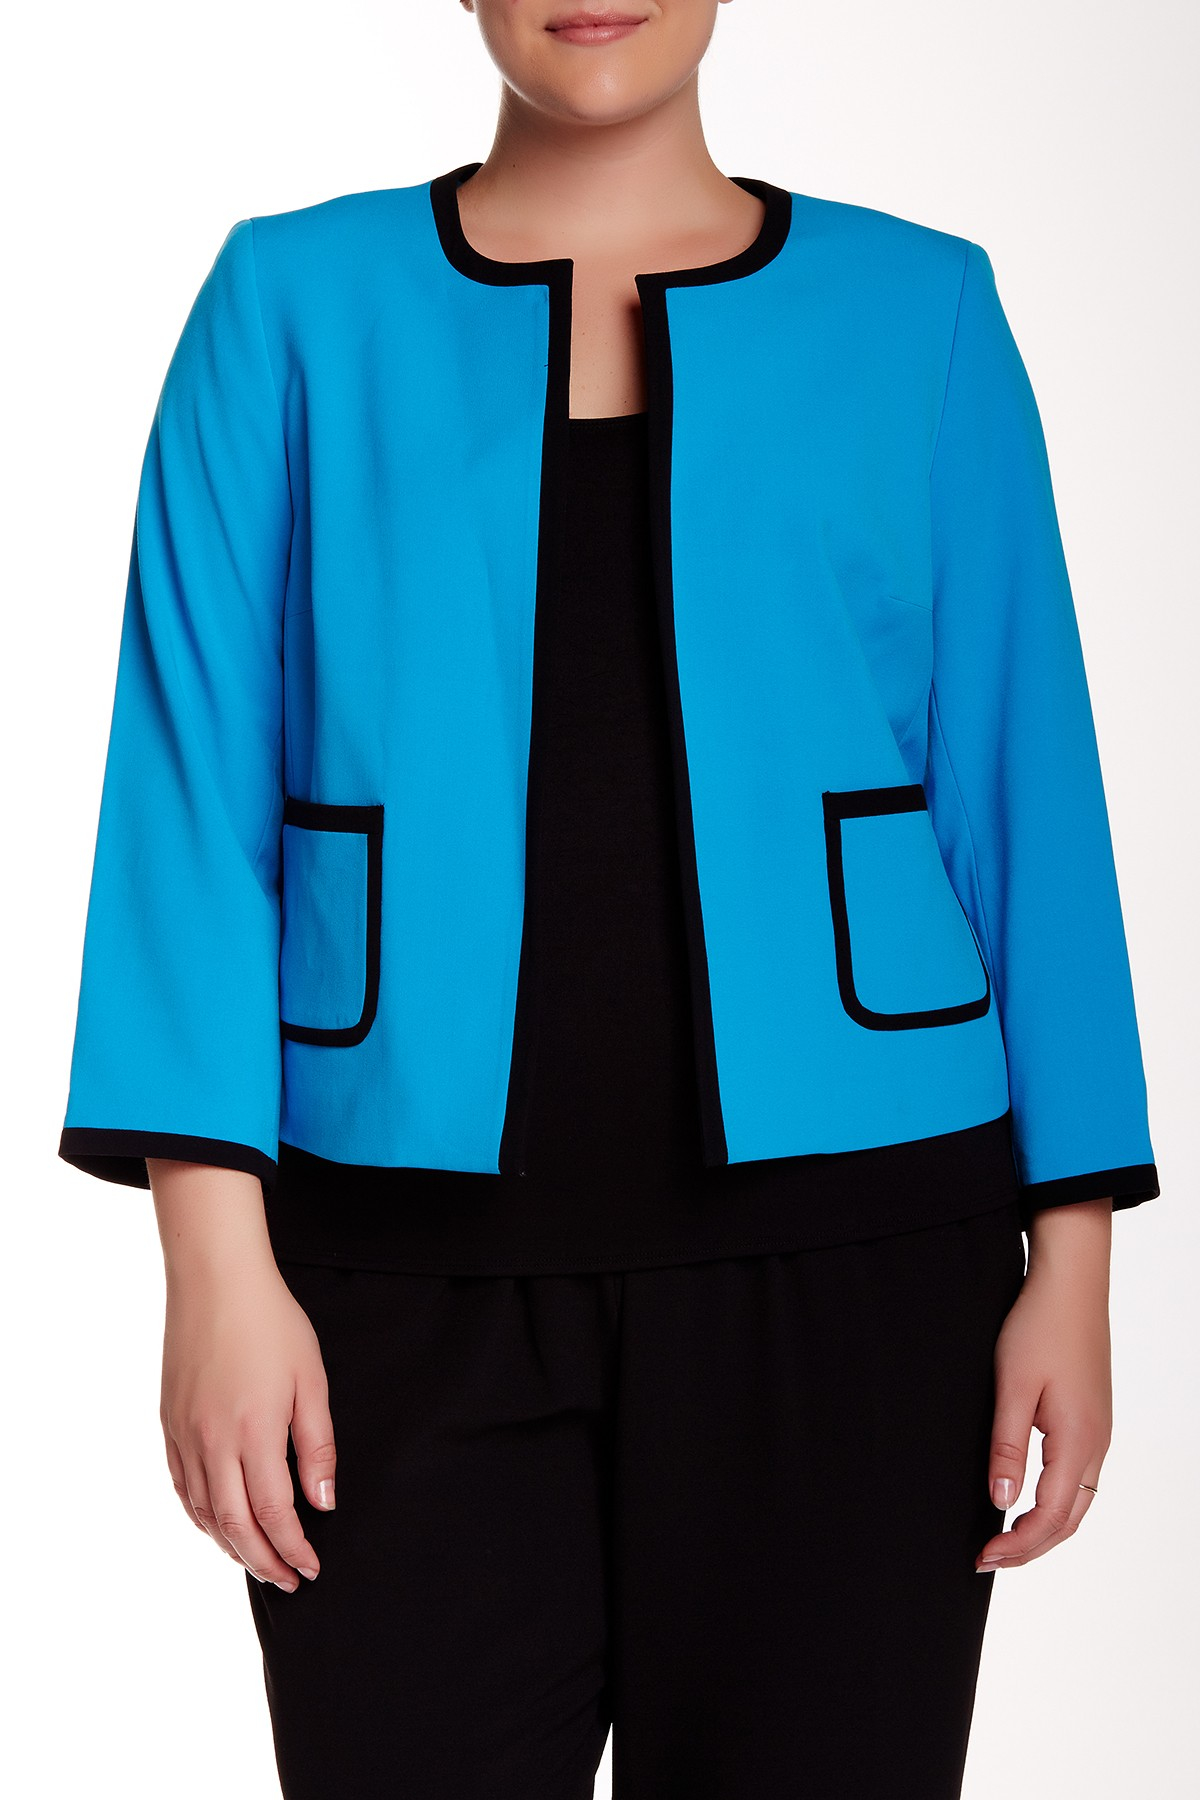 Nine West Taylor Stretch Flyaway Jacket Plus Size In